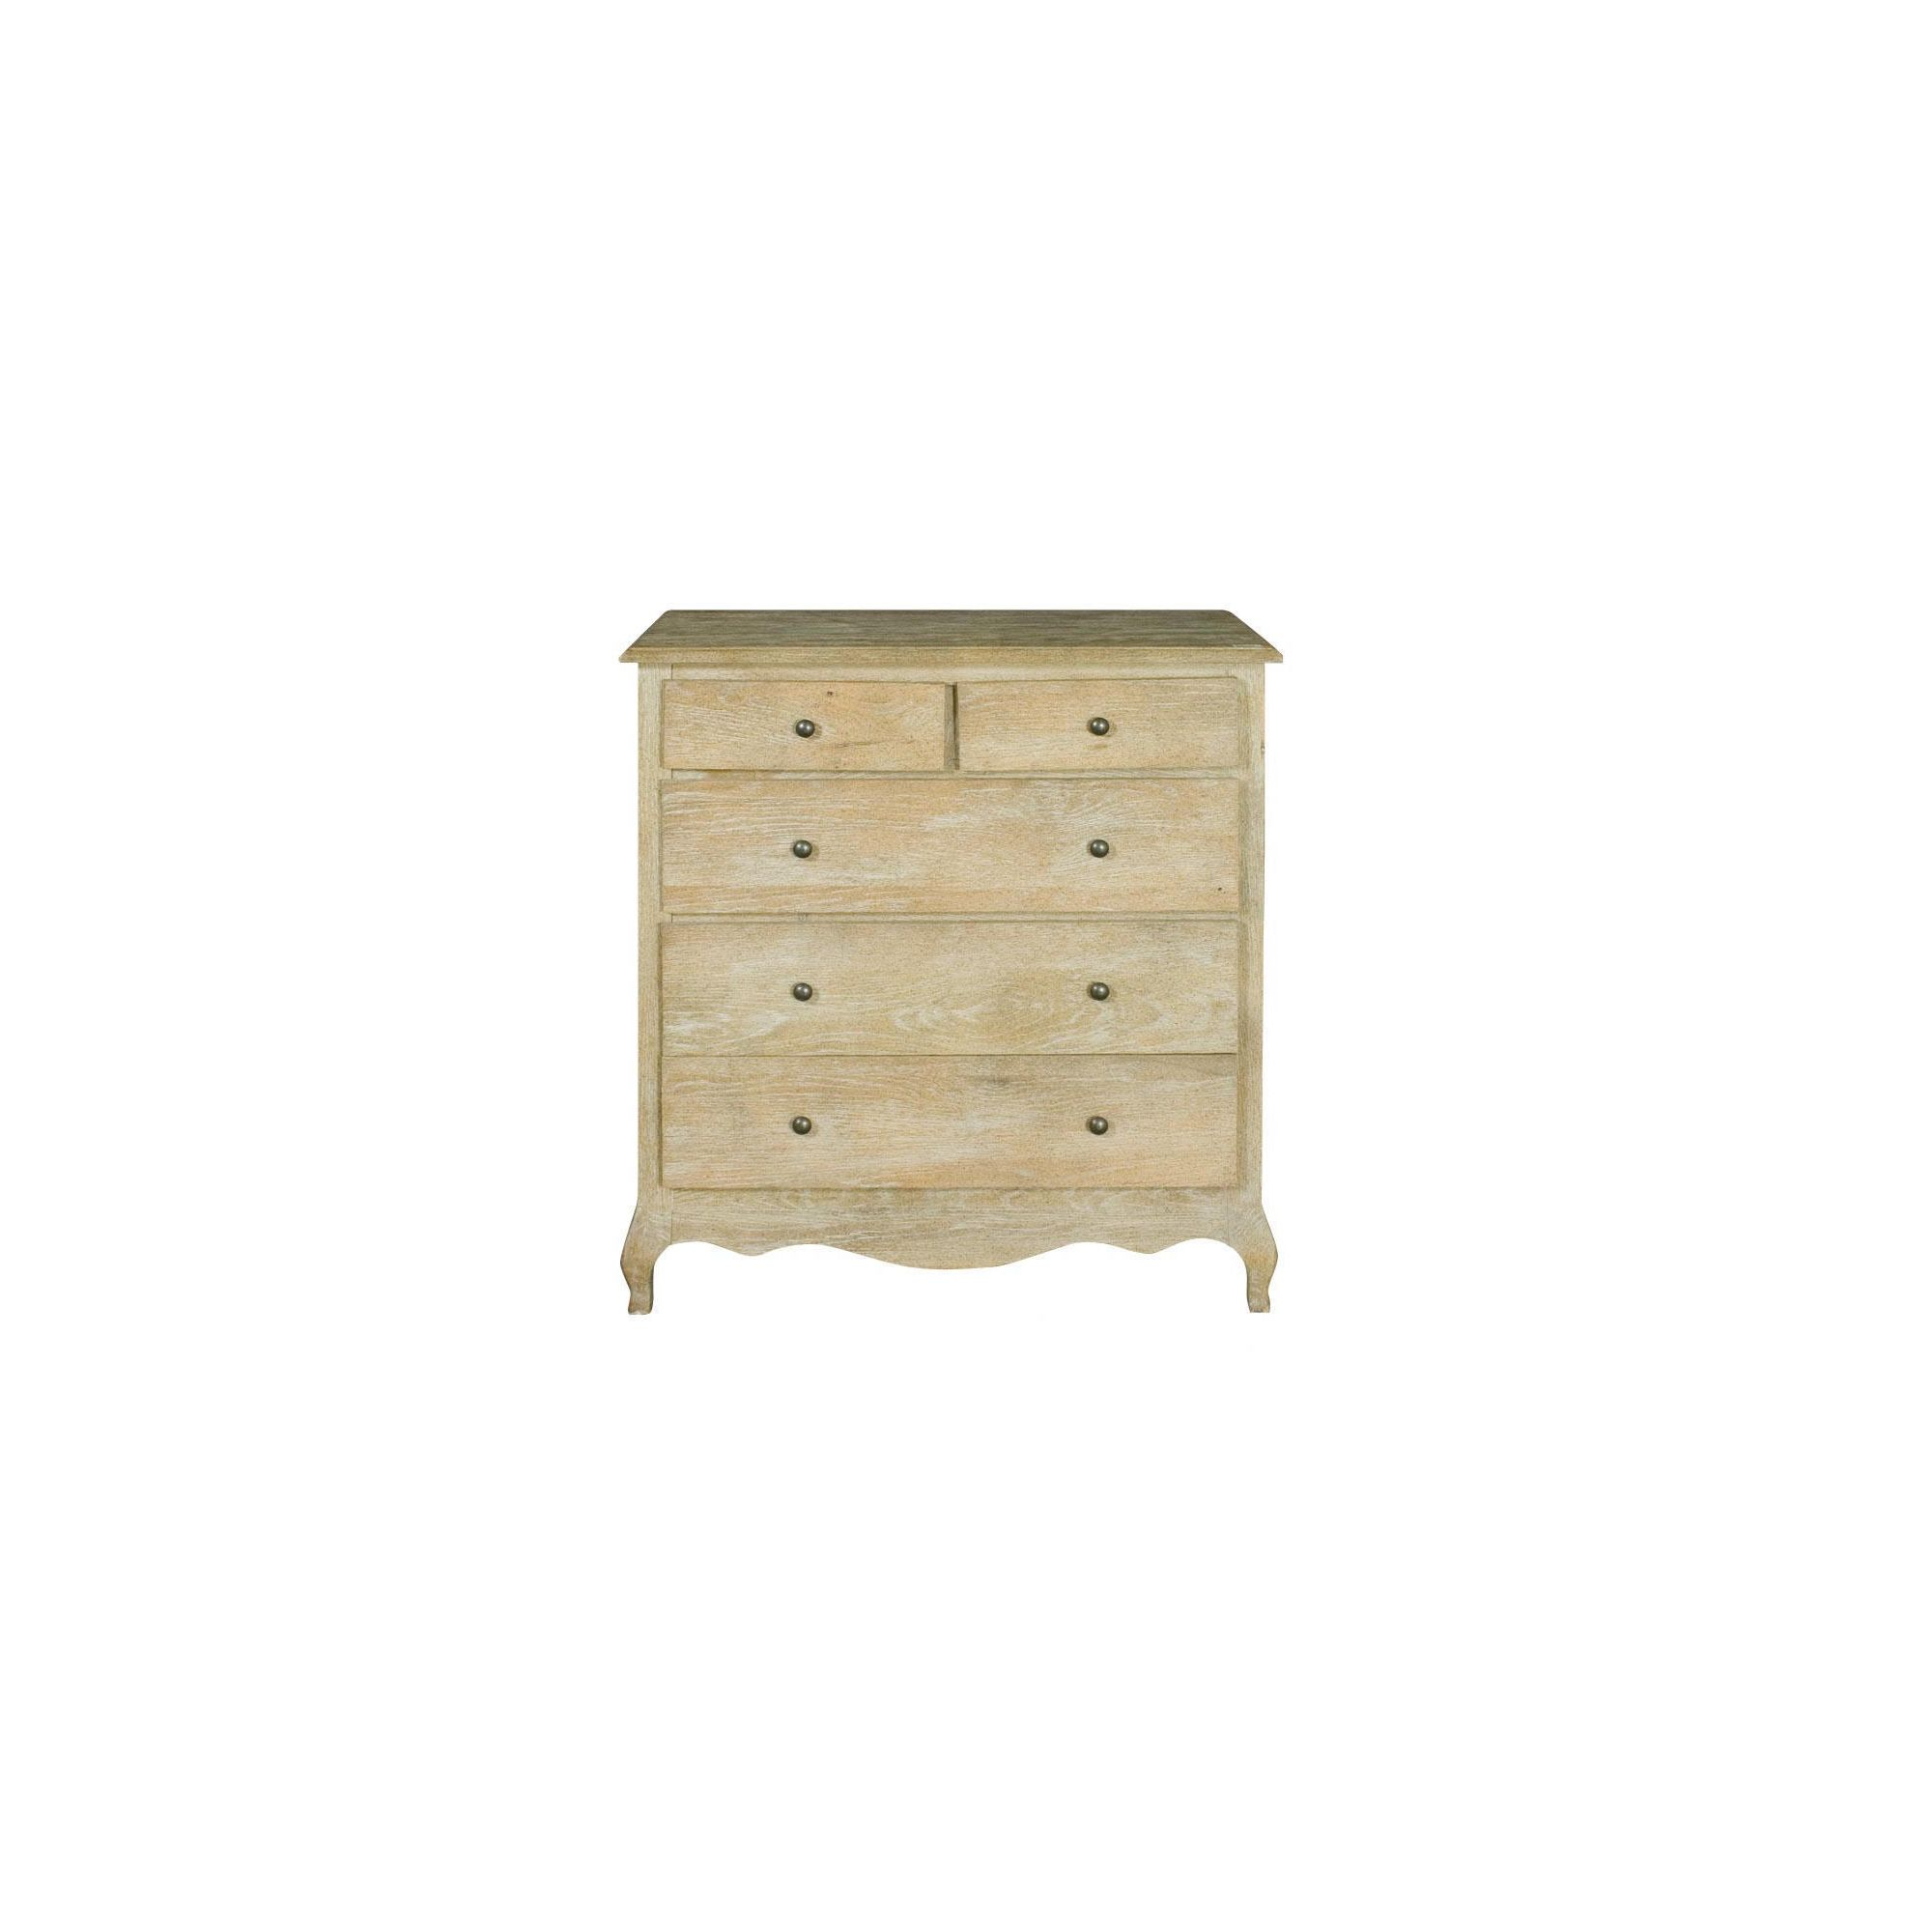 Alterton Furniture Oak 2 over 3 Drawer Chest at Tesco Direct